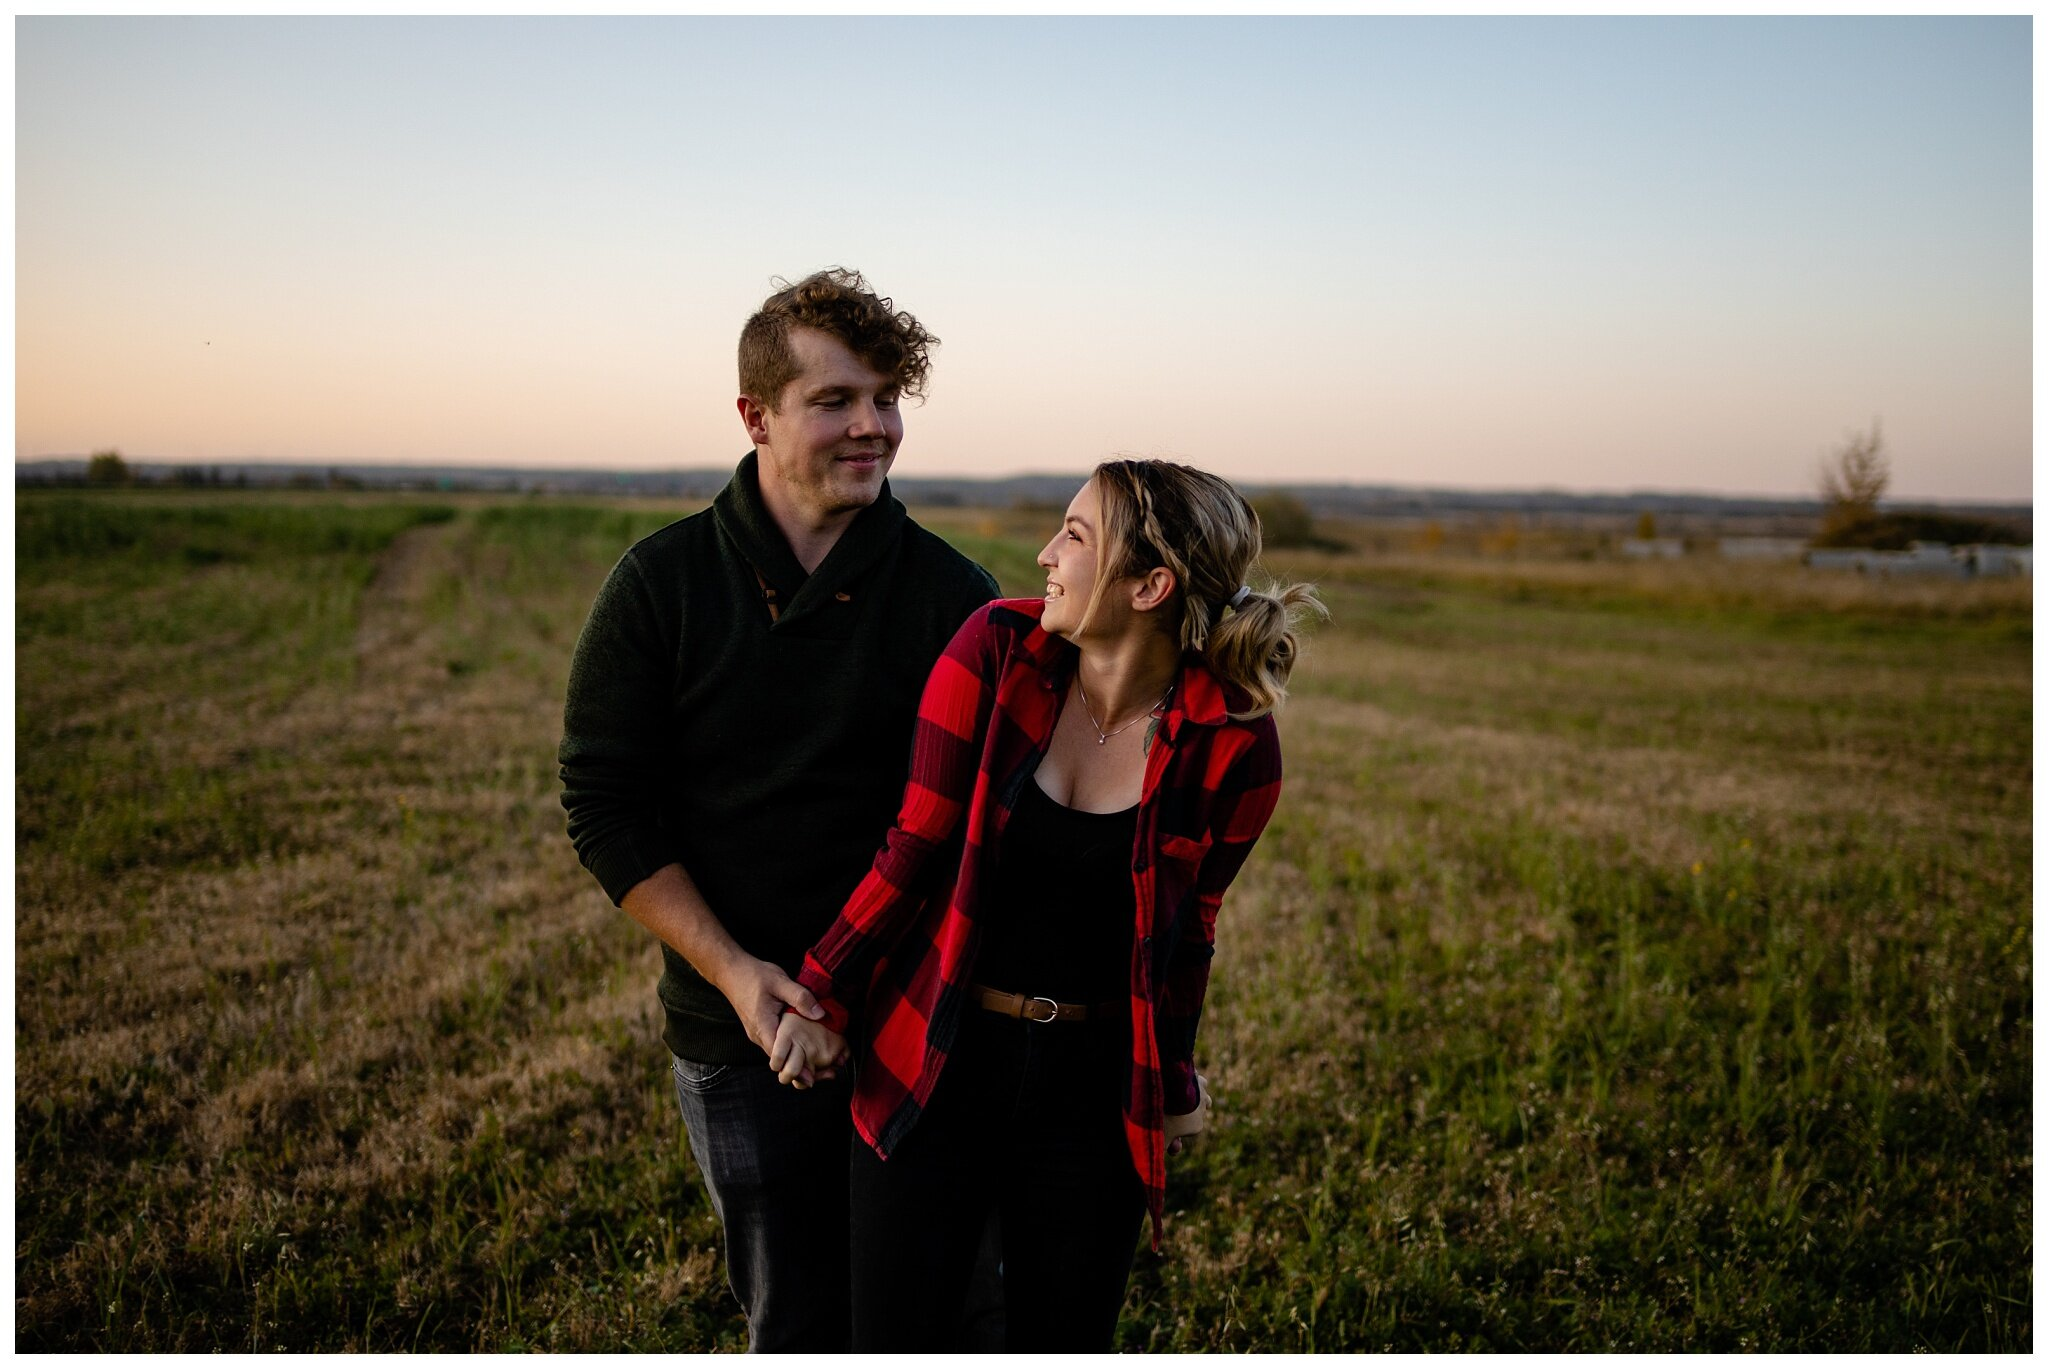 Spruce Grove Engagement Photographer Couples Connection Romantic Photography_0006.jpg